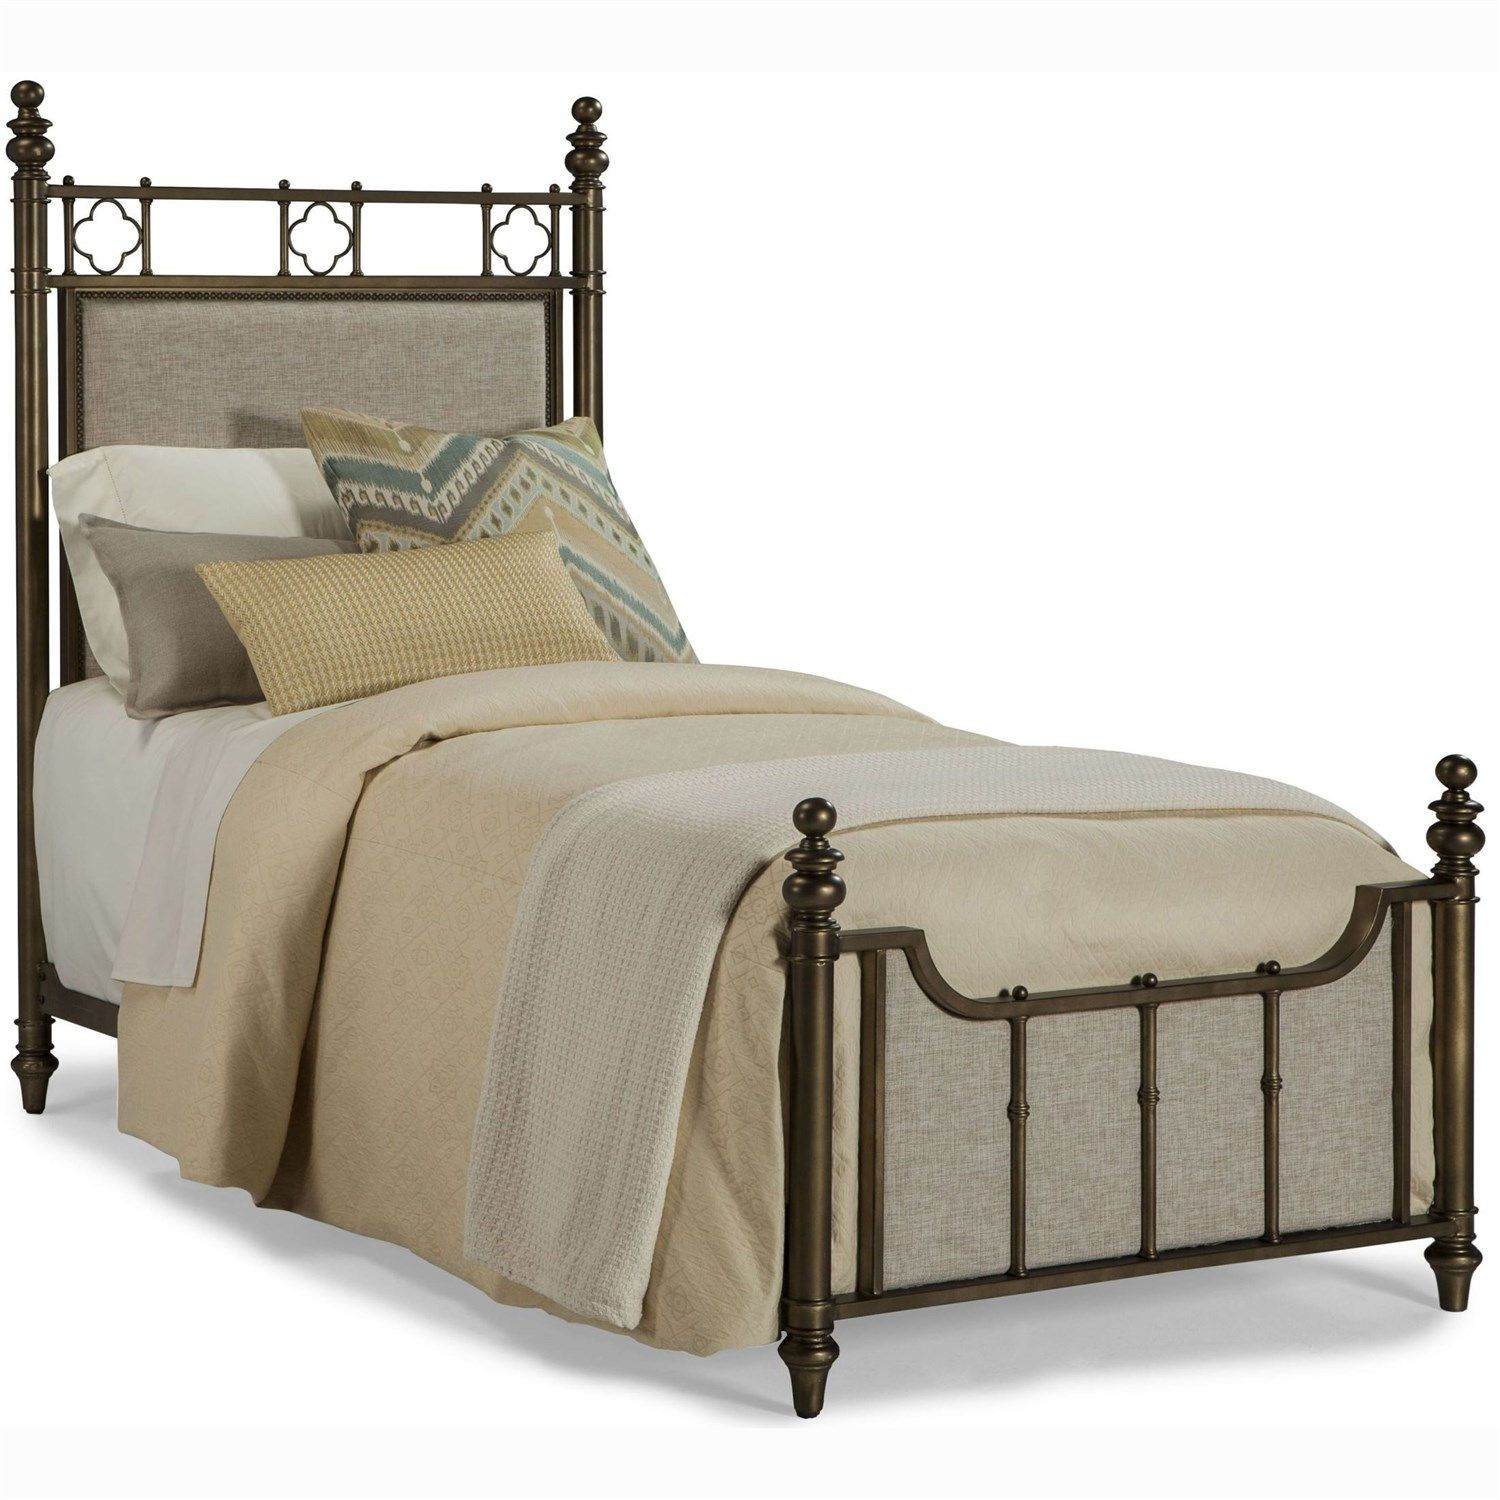 Furniture 1226 Pavilion Twin Metal Bed in Antique Brass